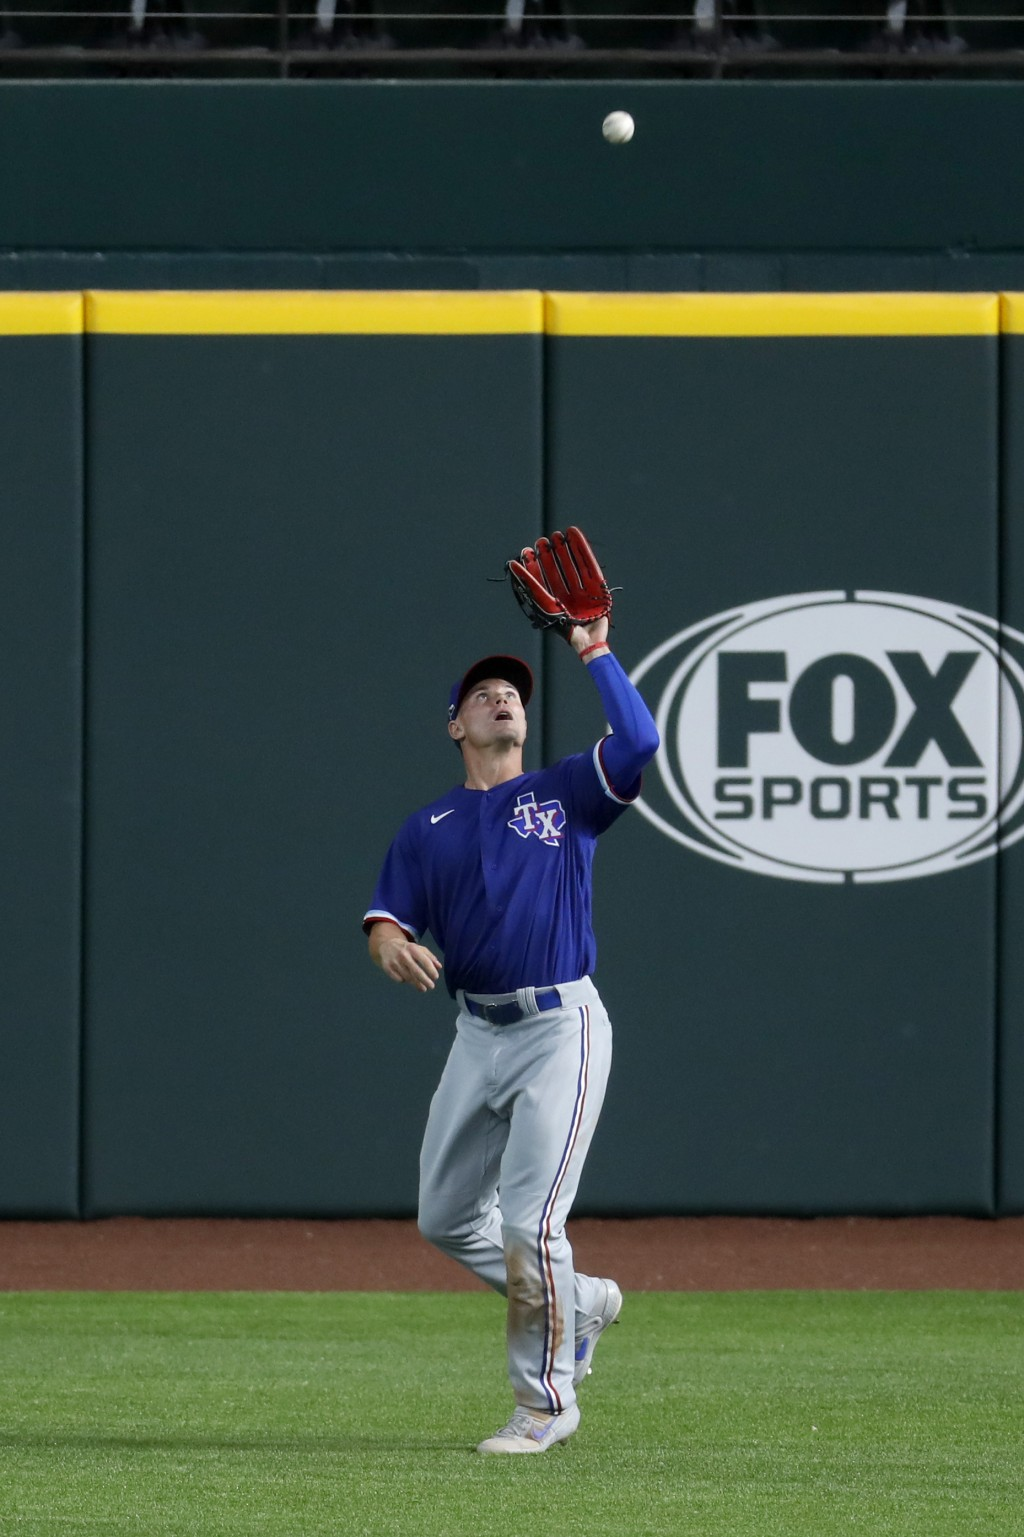 Texas Rangers outfielder Scott Heineman reaches up to catch a fly ball hit by Josh Jung during an intrasquad game at baseball practice in Arlington, T...